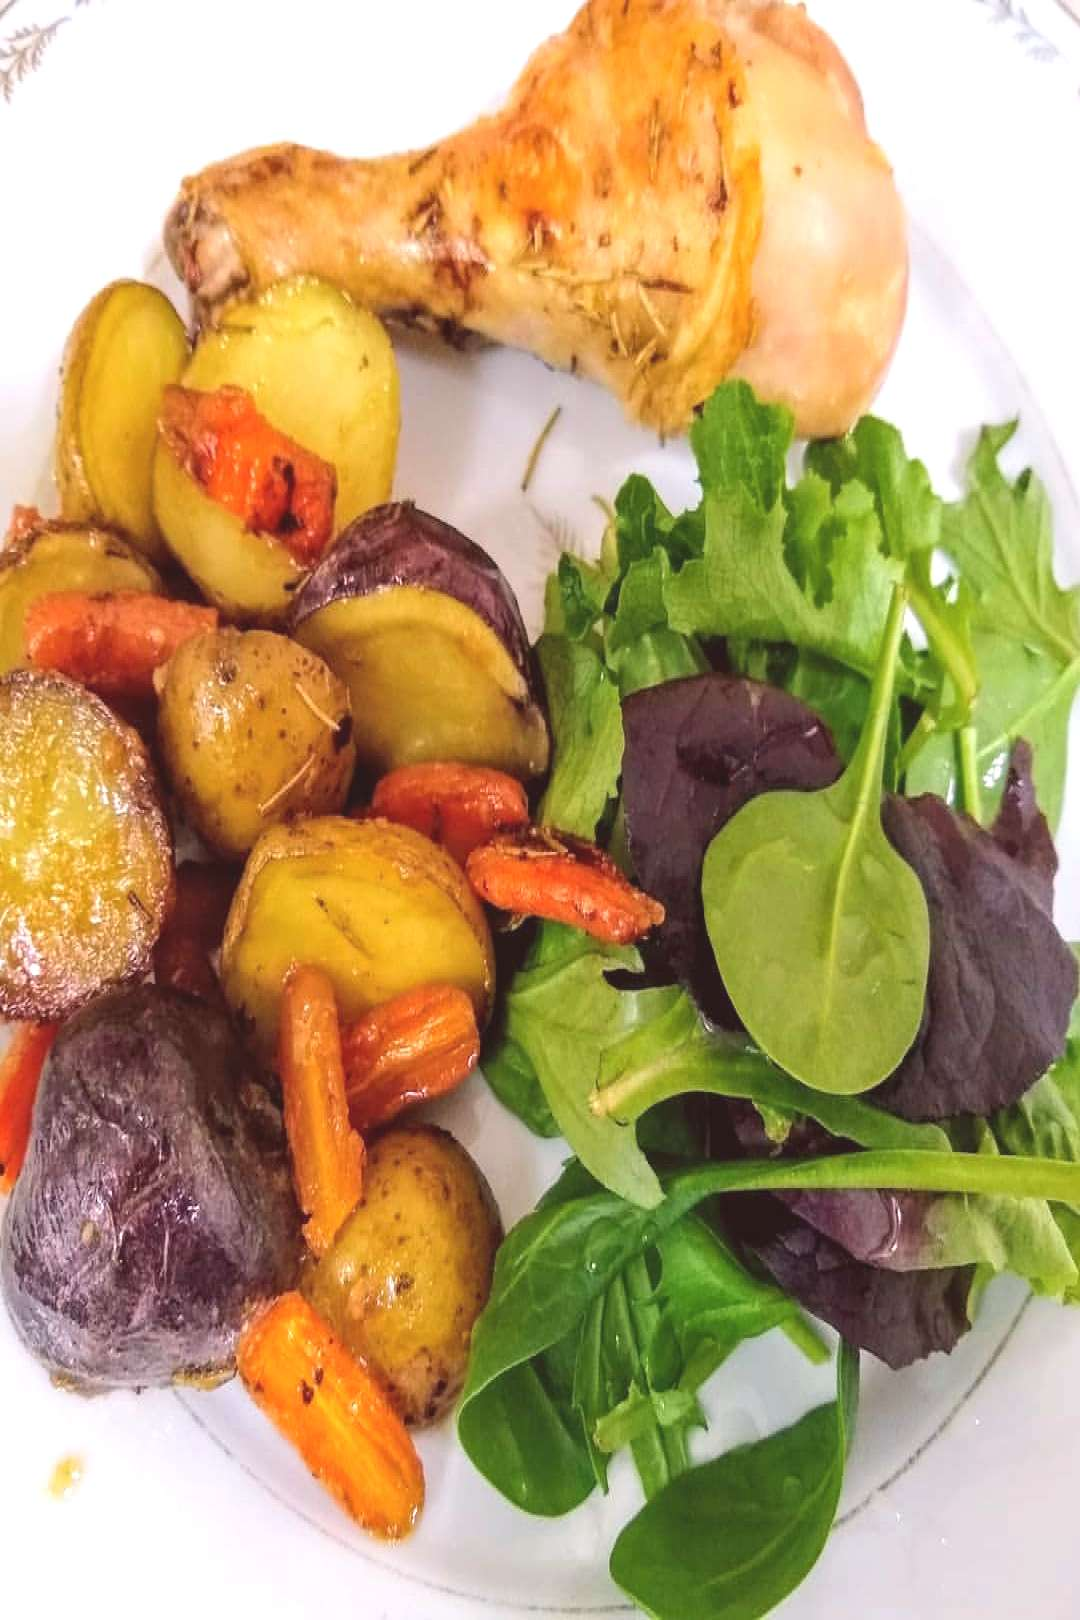 Todays dinner roasted drumsticks, mini potatoes and carrots and